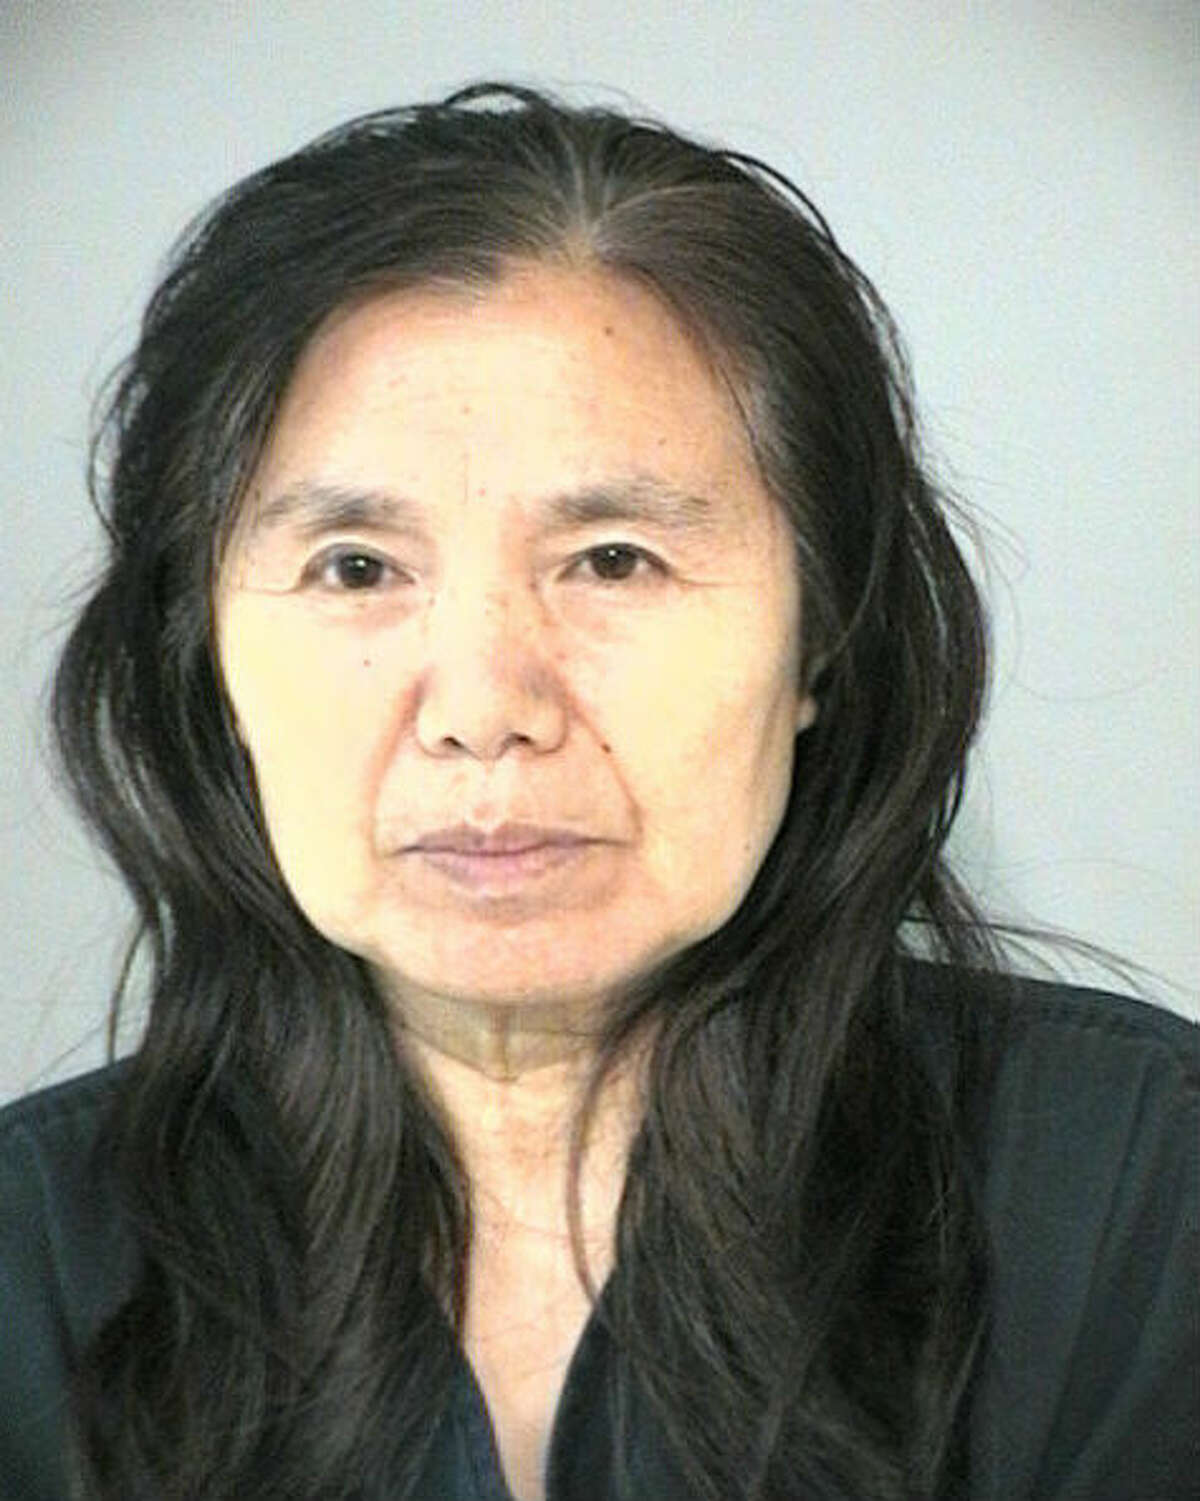 Chunyun Pang, 61,was arrested and charged with prostitution during a bust of the Oasis Foot Reflexology spa in Cinco Ranch.